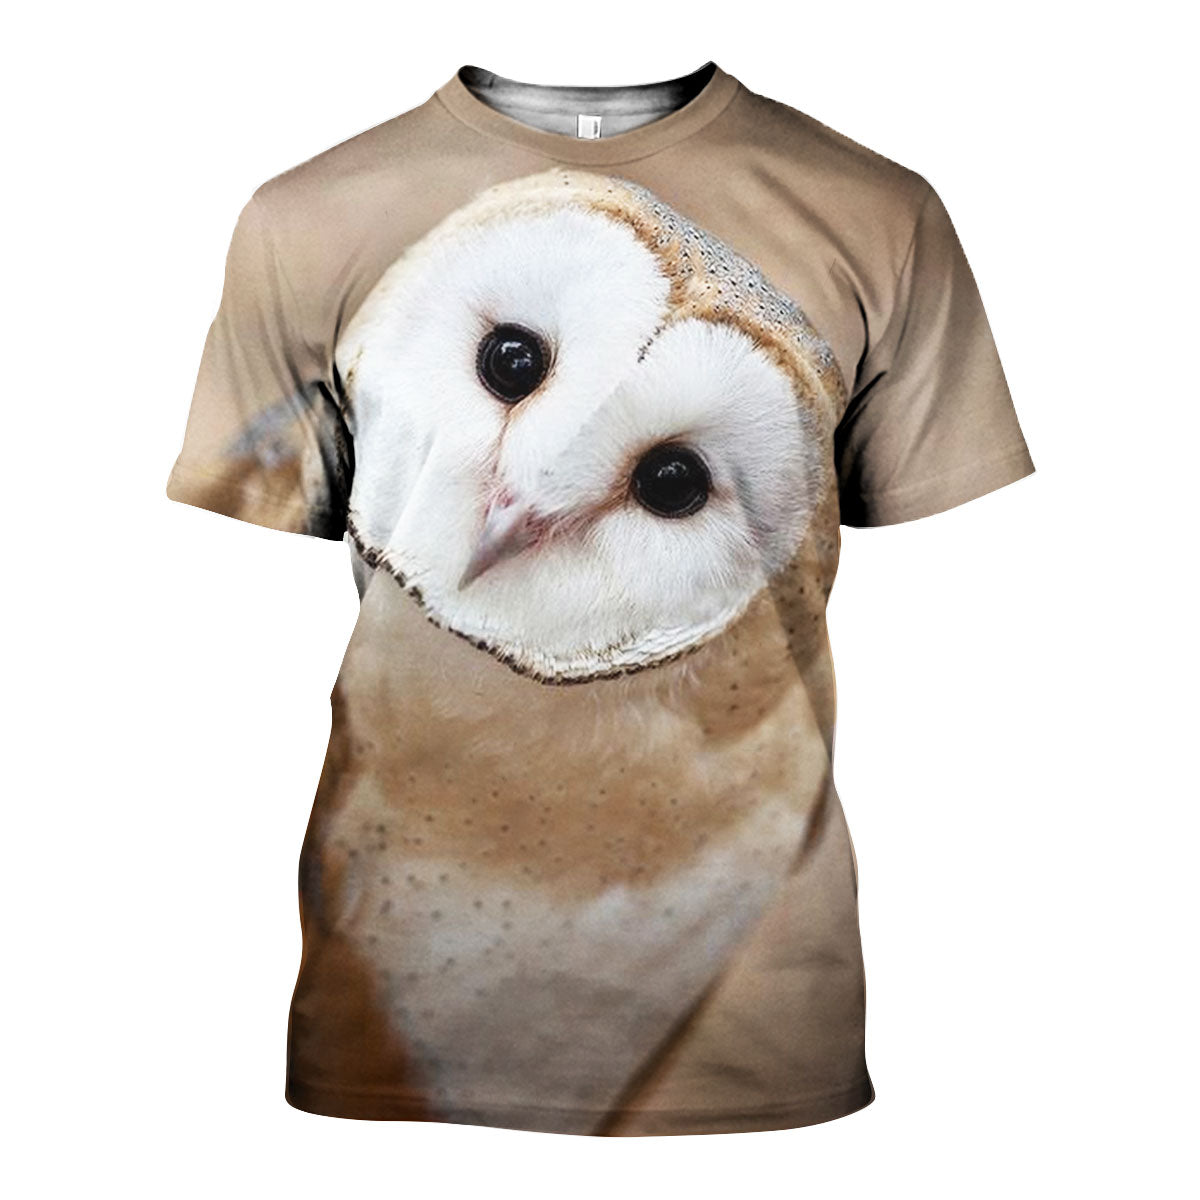 3D All Over Printed Barn owl Shirts And Shorts DT071103 ...